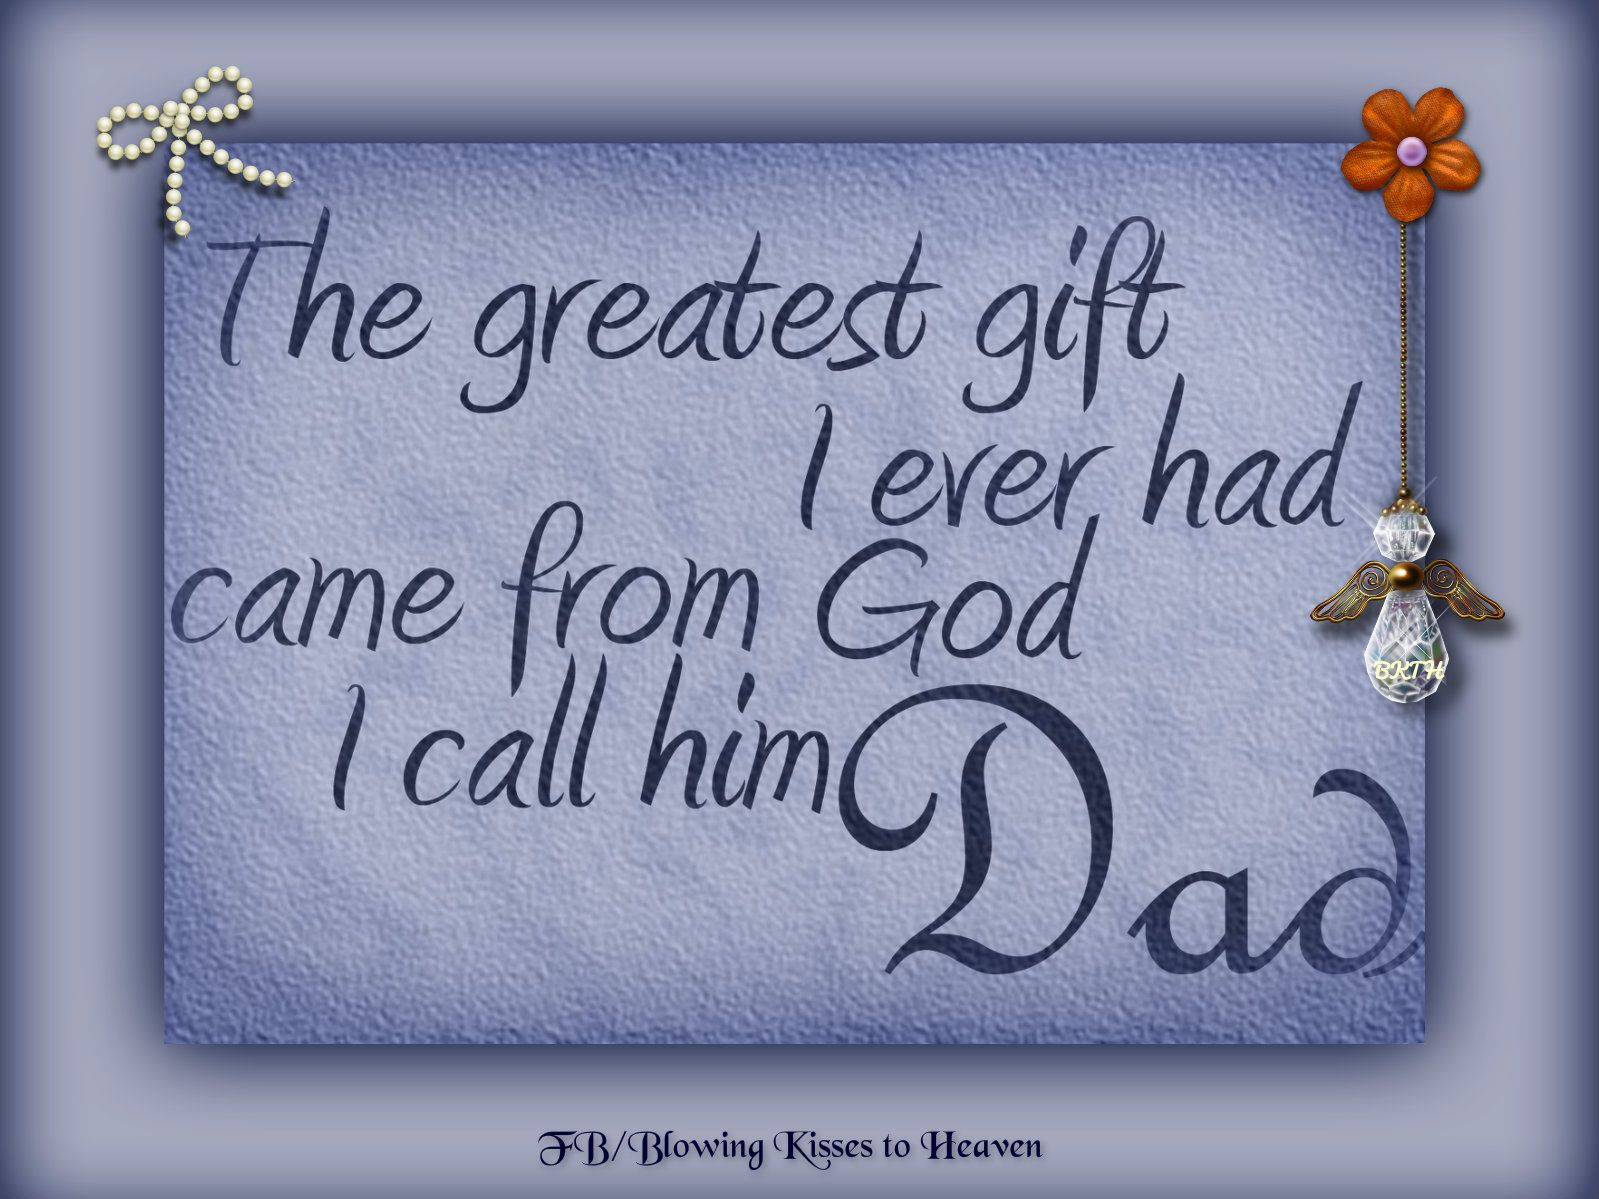 Happy Fathers Day Babe Quotes: Missing My Loved Ones In Heaven